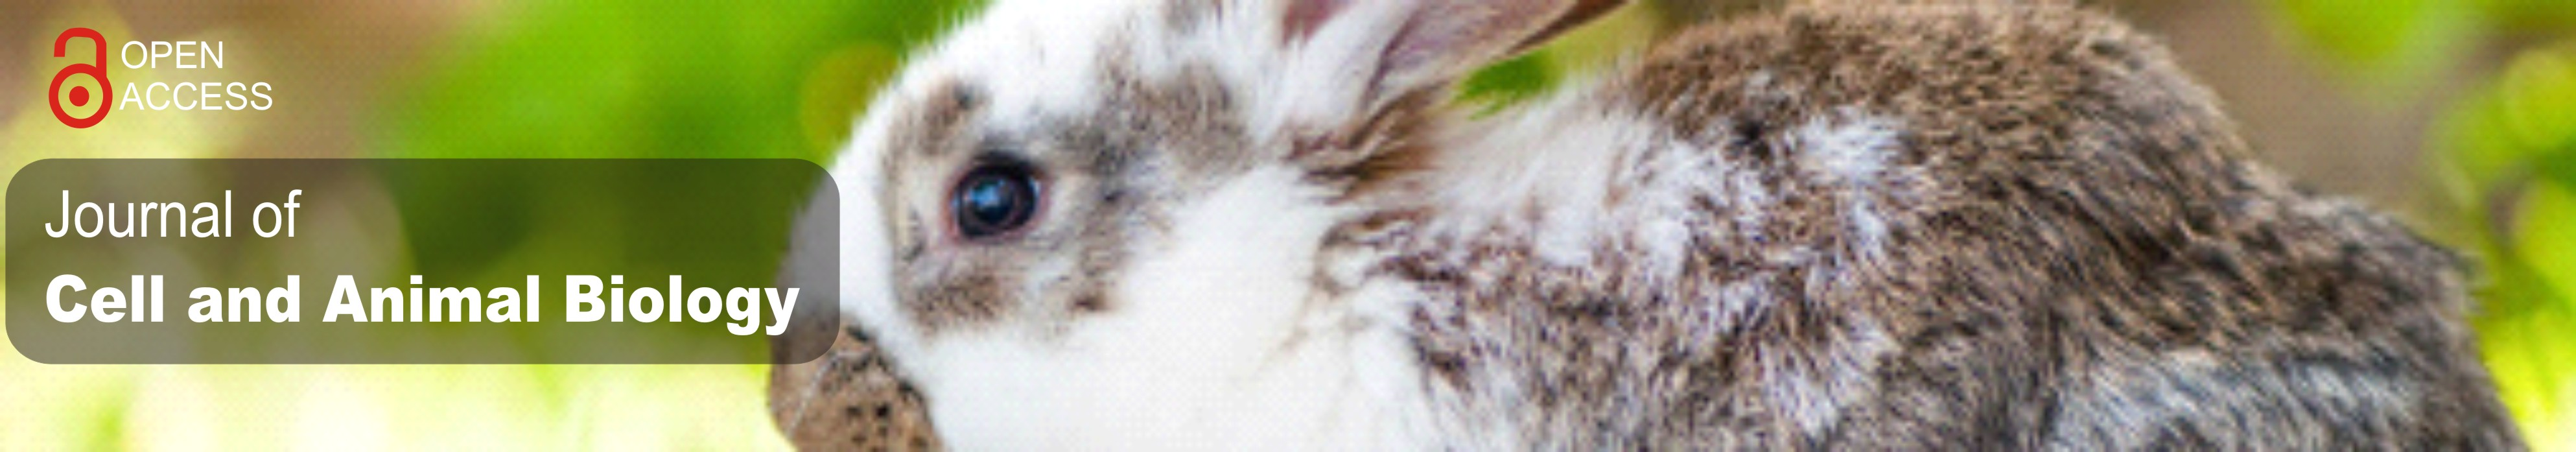 Journal of Cell and Animal Biology